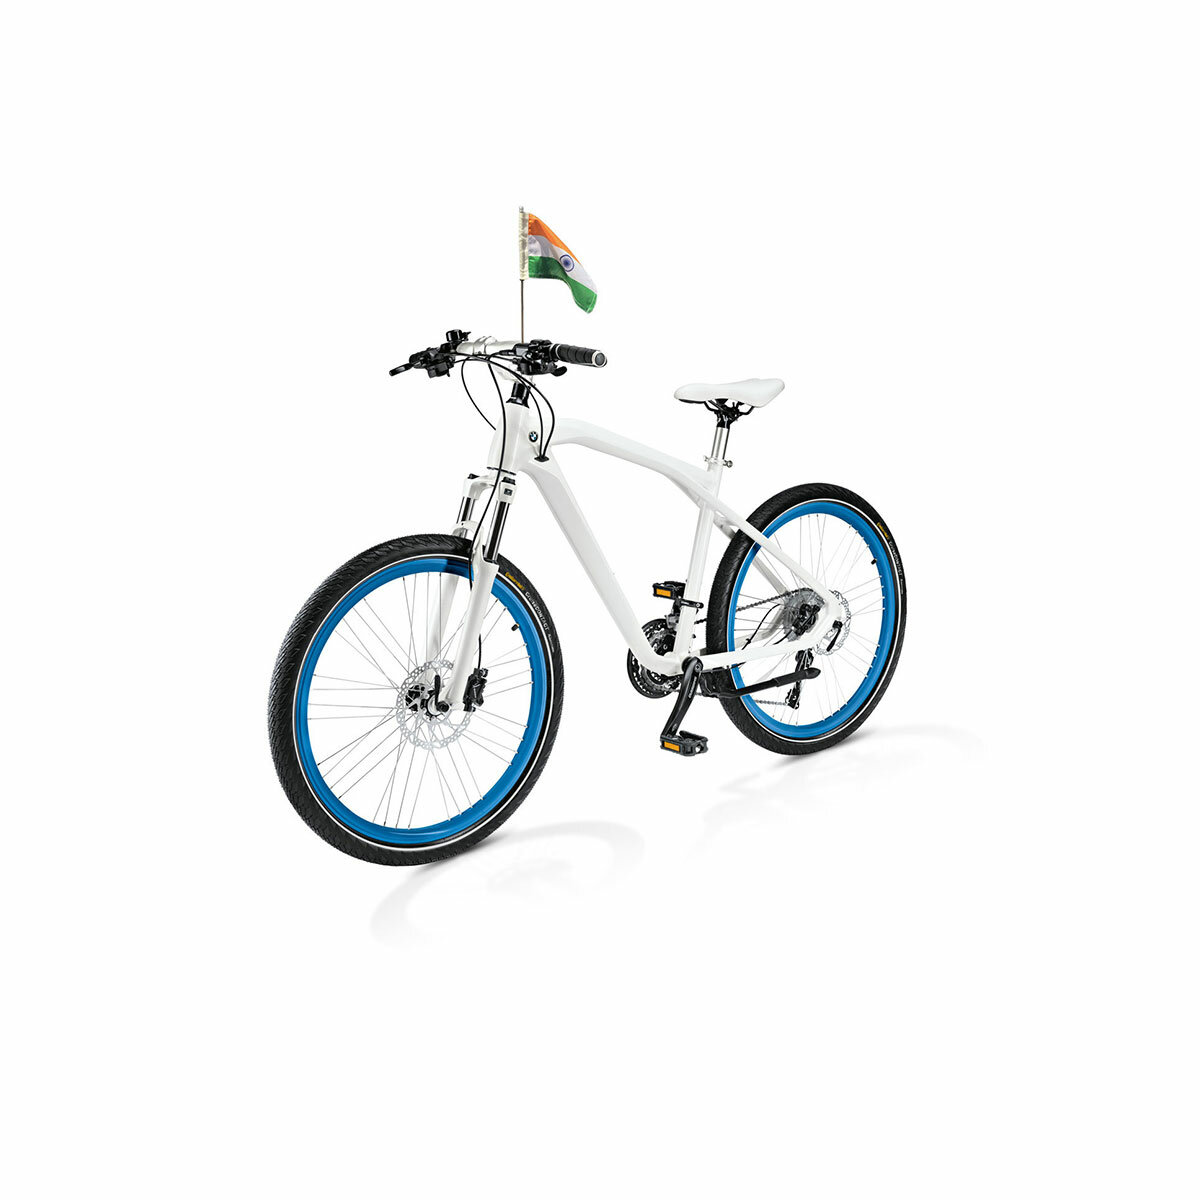 Durable Indian Flag Mounted On A Cycle / Bicycle